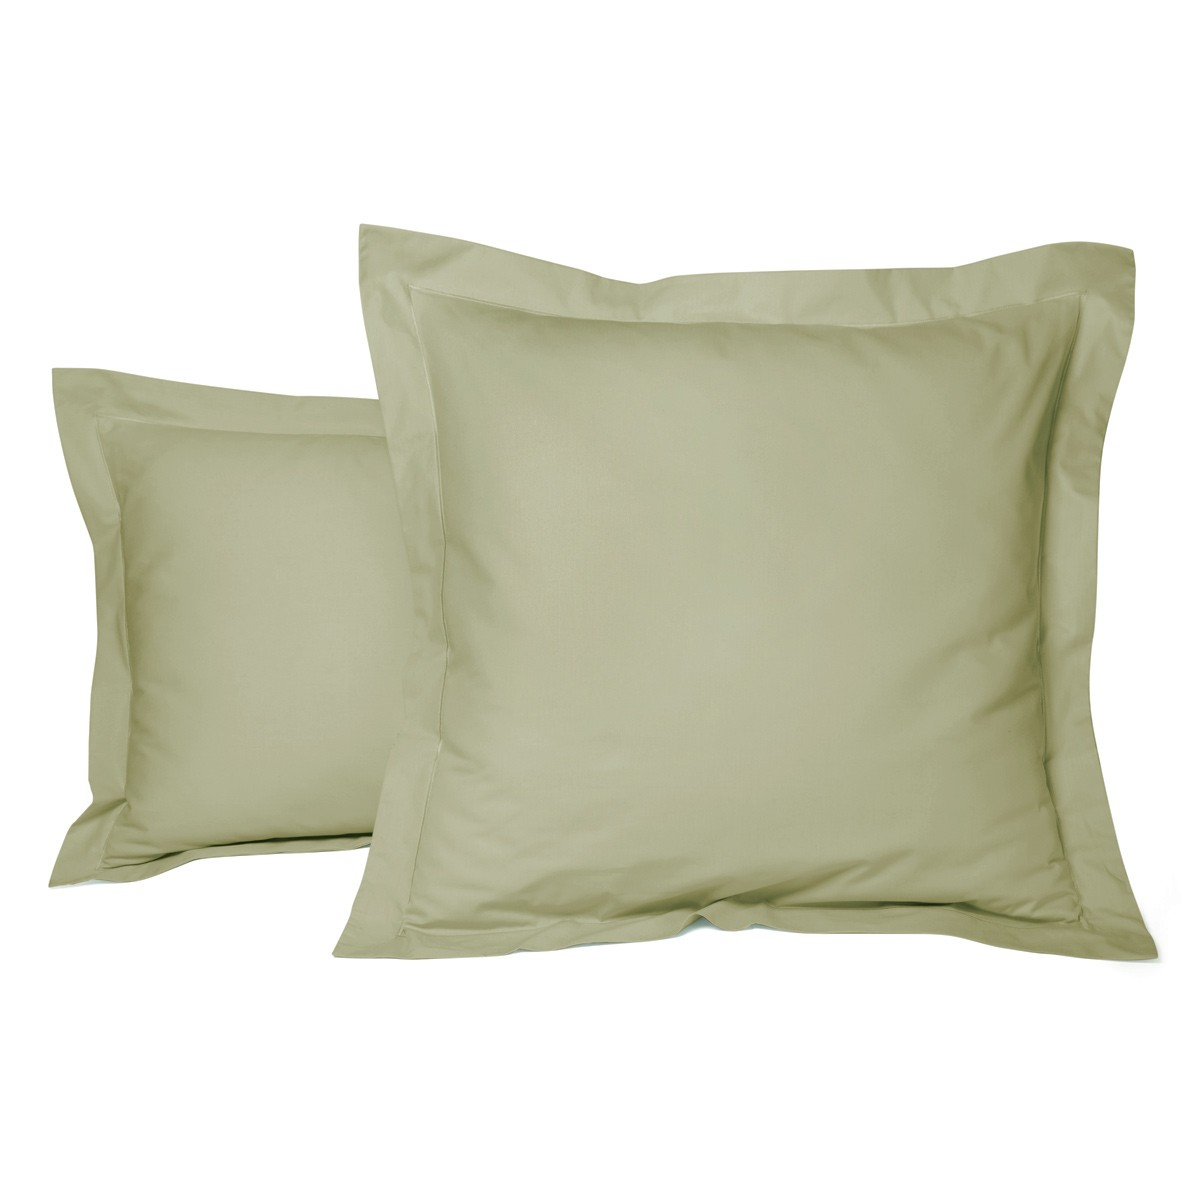 Pillowcase Solid Color Percale (Discontinued) | Bed linen | Tradition des Vosges